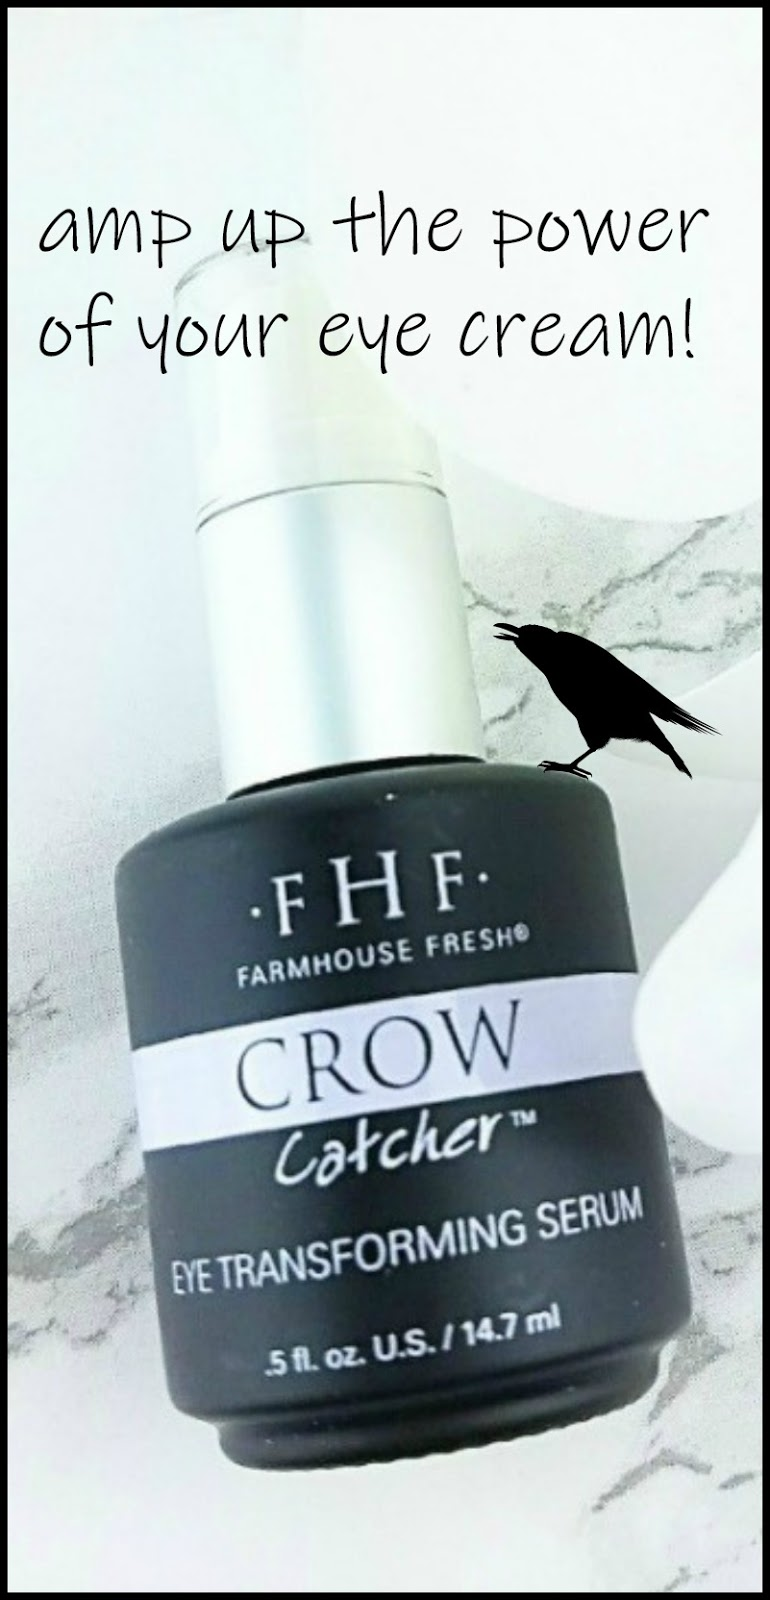 Amp Up The Power of Your Eye Cream with Farmhouse Fresh Crow Catcher Eye Transforming Serum